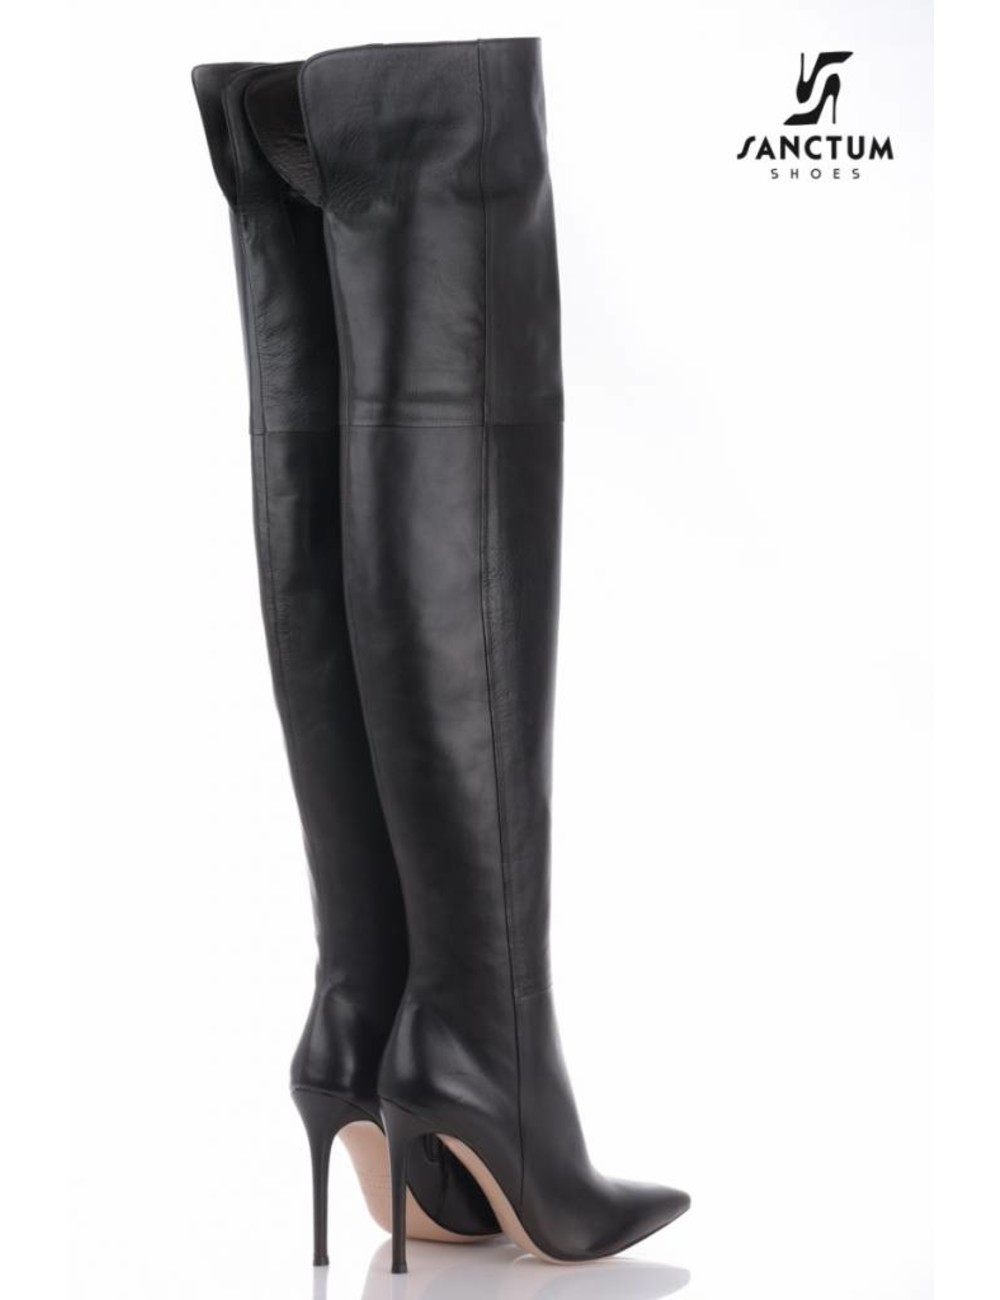 Italian leather boots with thin heels